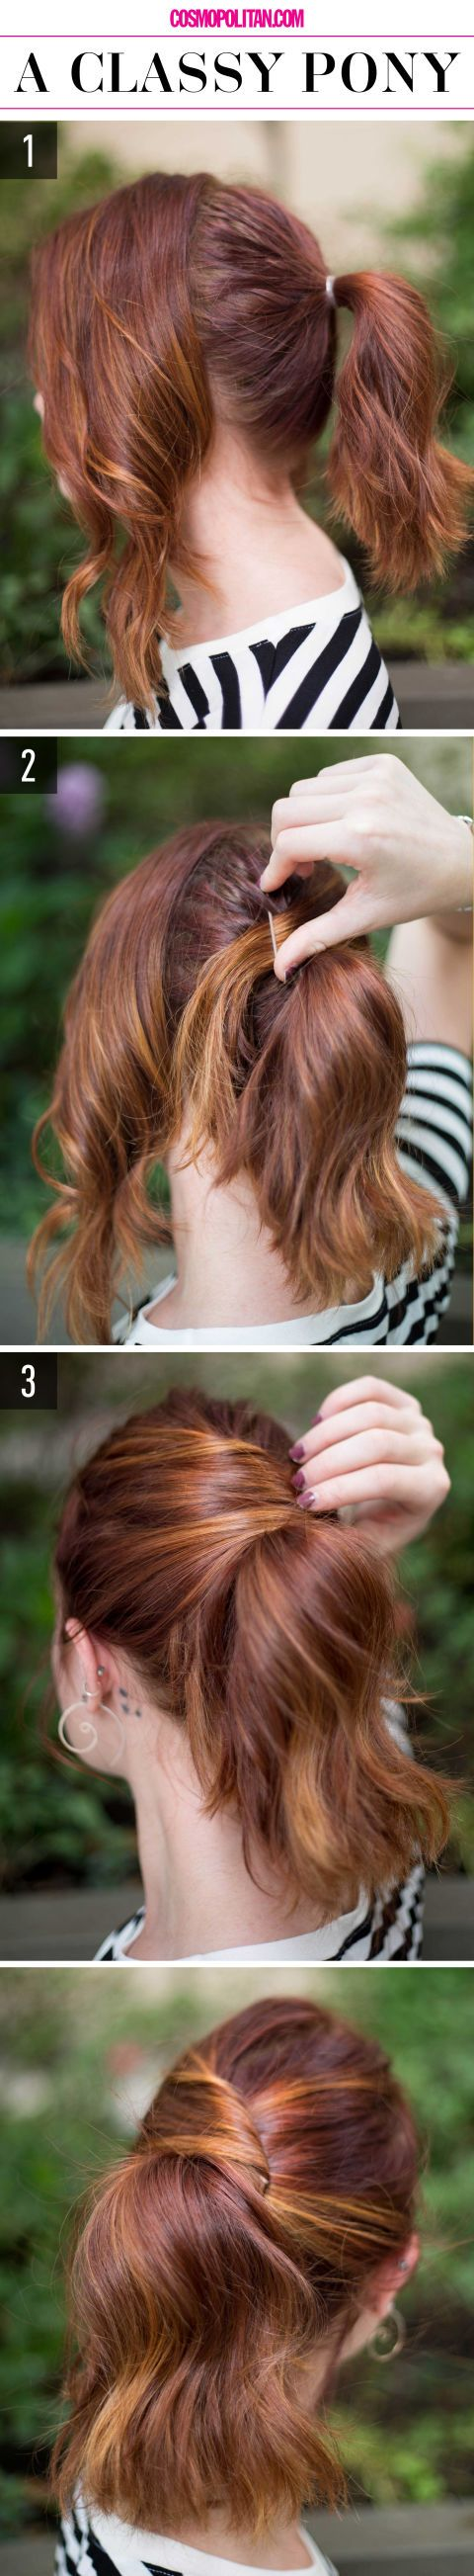 best images about Beauty on Pinterest Hairstyles Tummy tucks